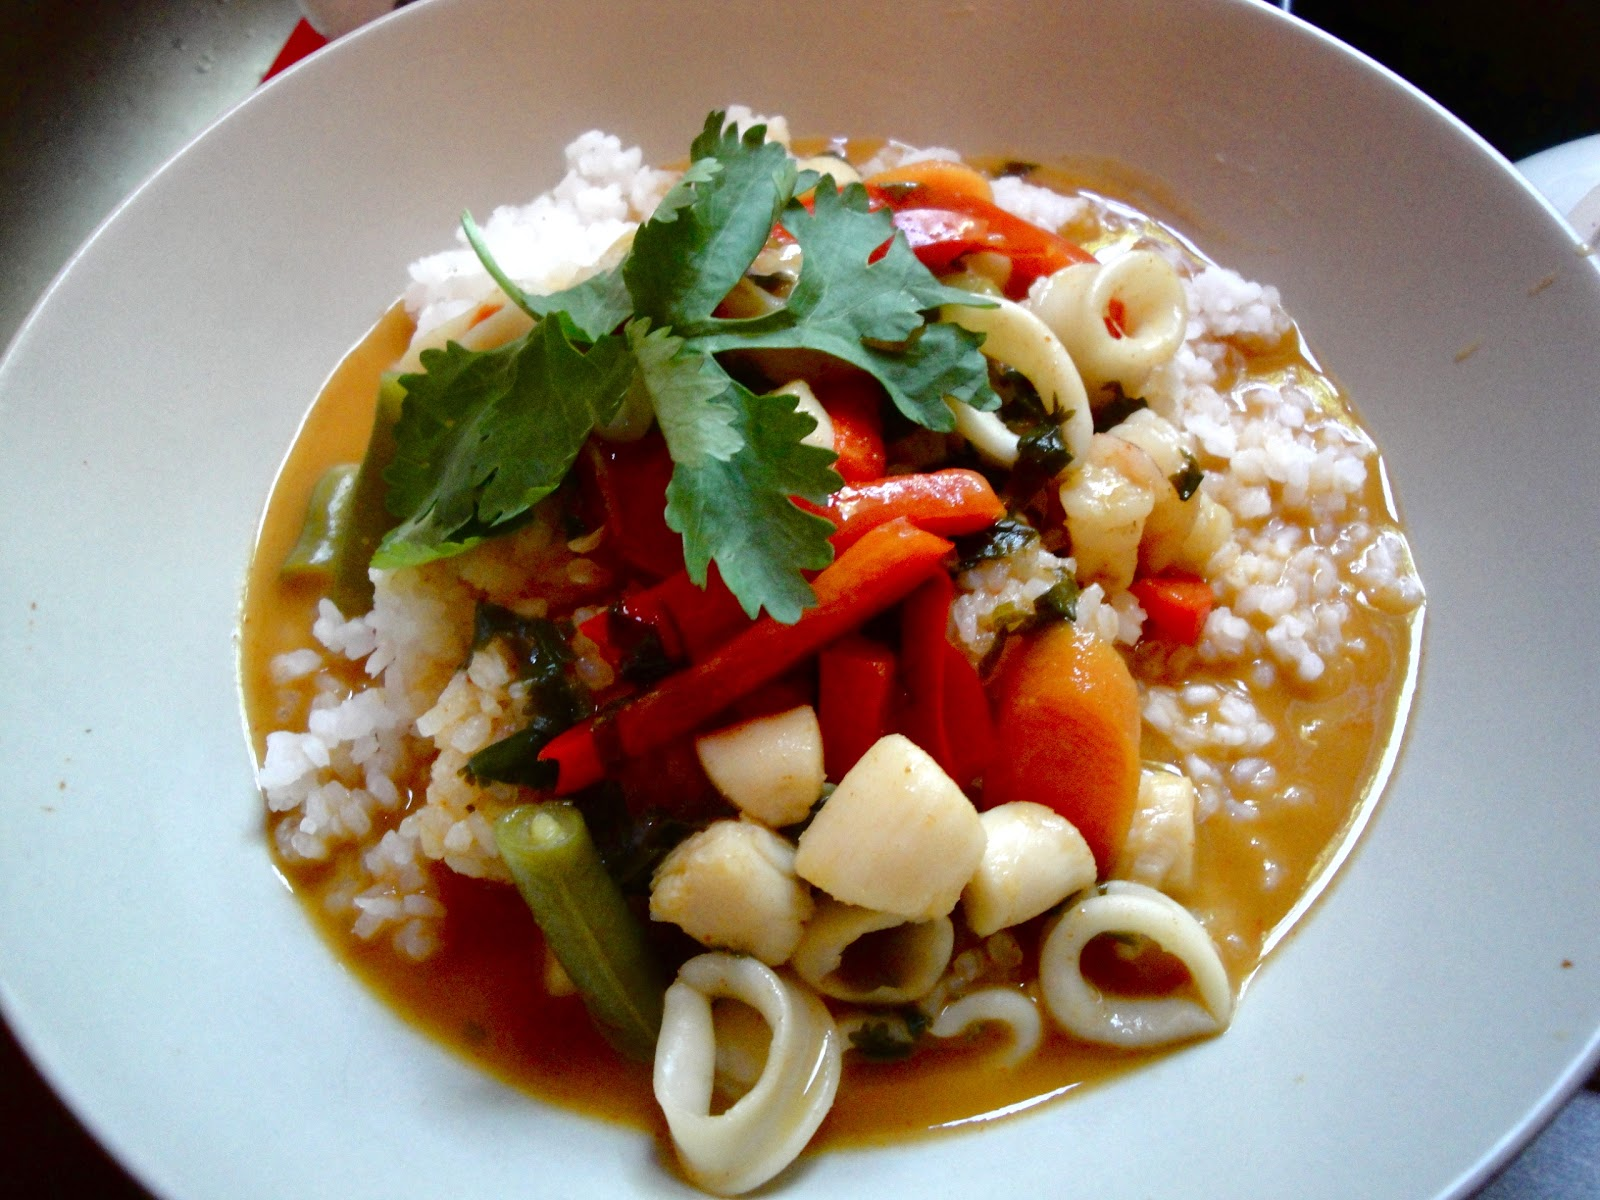 ... : Dinner Tonight: Red Thai Coconut Curry with Seafood and Sticky Rice